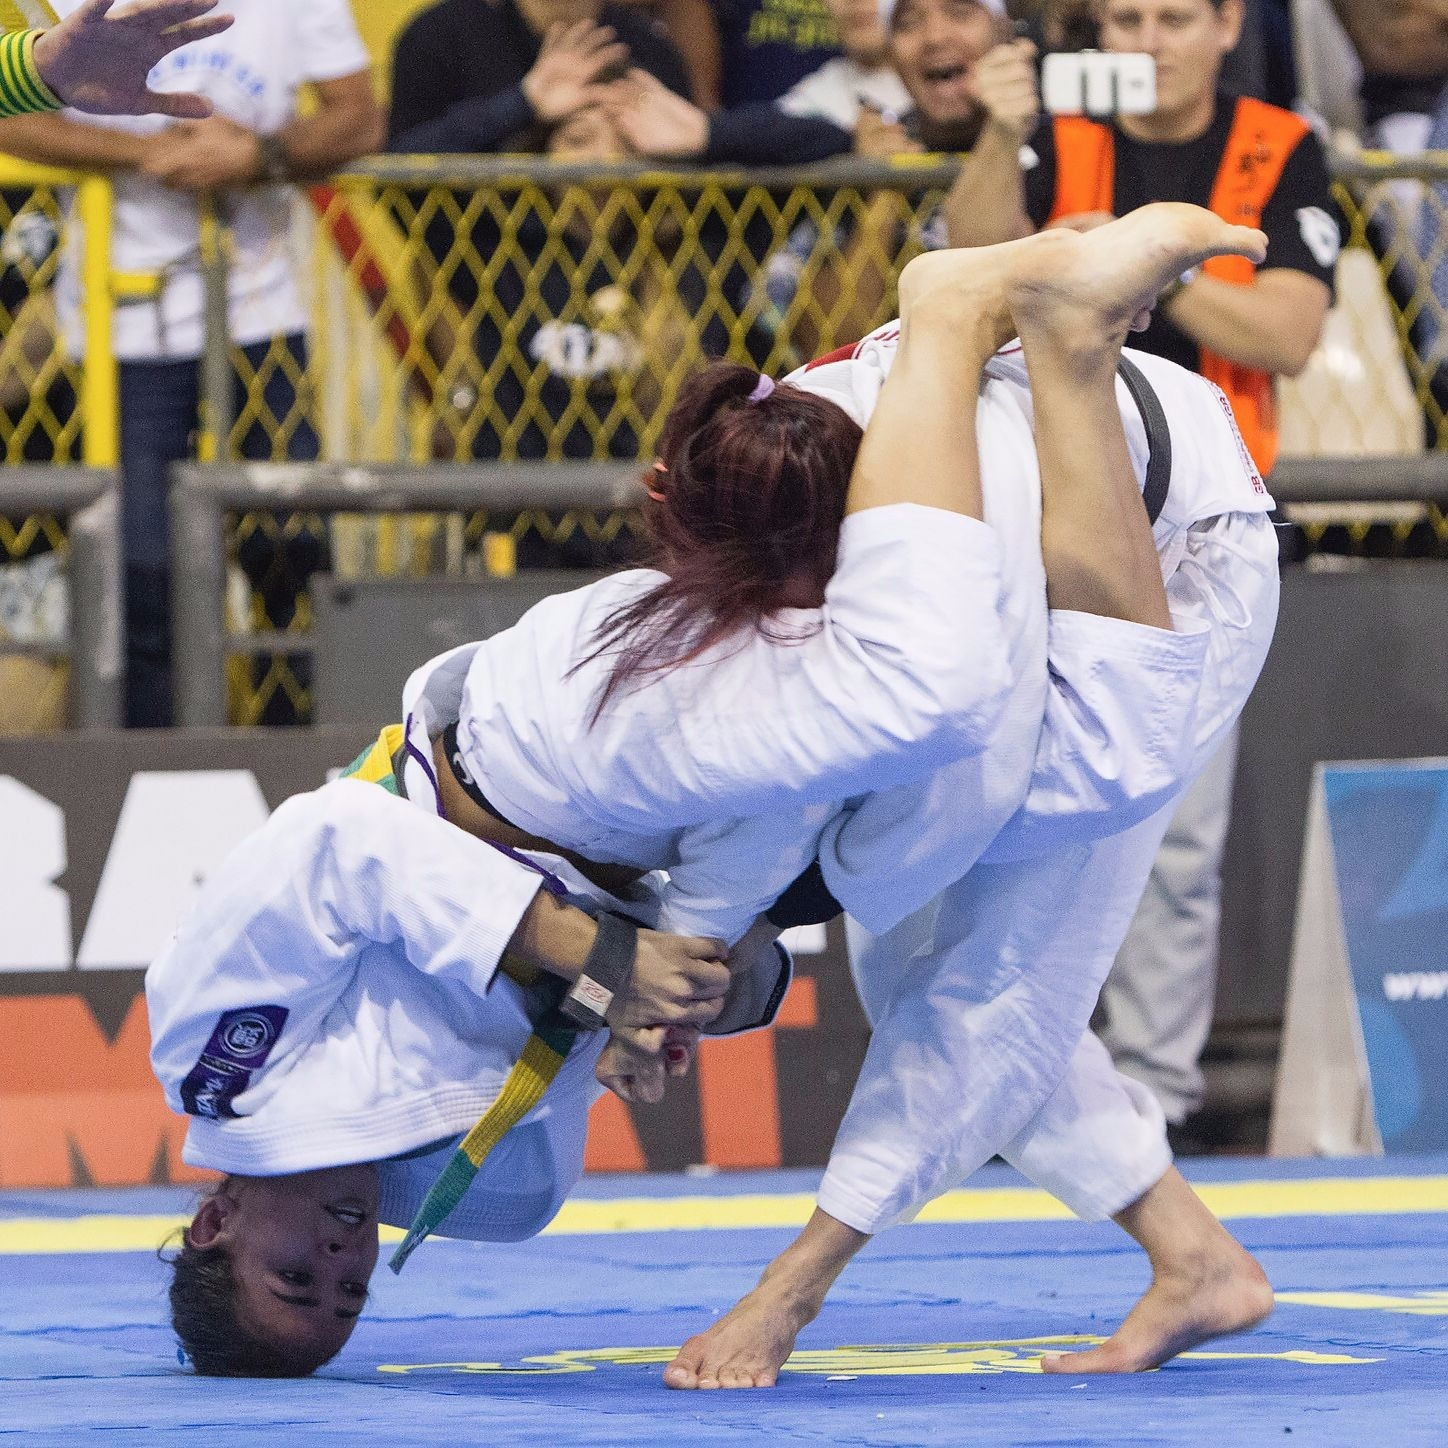 The young Bia Mesquita is already a 7-time World Jiu-Jitsu IBJJF Championship champion (two of these titles being in the open weight division). She has a vast record of majors gold medals such as in the Pan, No Gi Worlds, Euro, and Brazilian Nationals, and is in this photo arm barring her opponent to conquer the 2016 Rio Open.